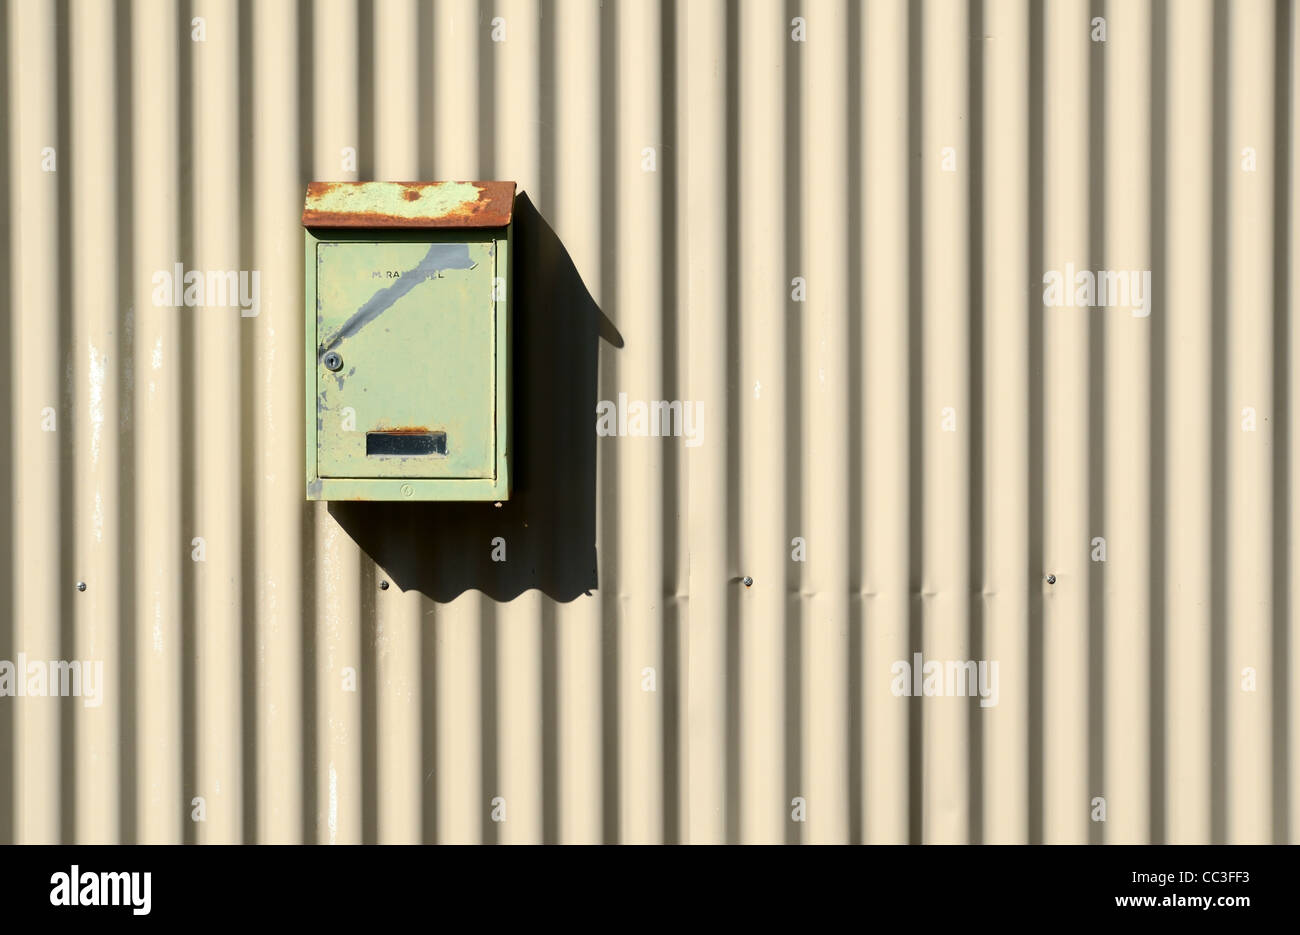 Single French Metal Letter Box Post Box or Mail Box on Corrugated Iron Wall - Stock Image